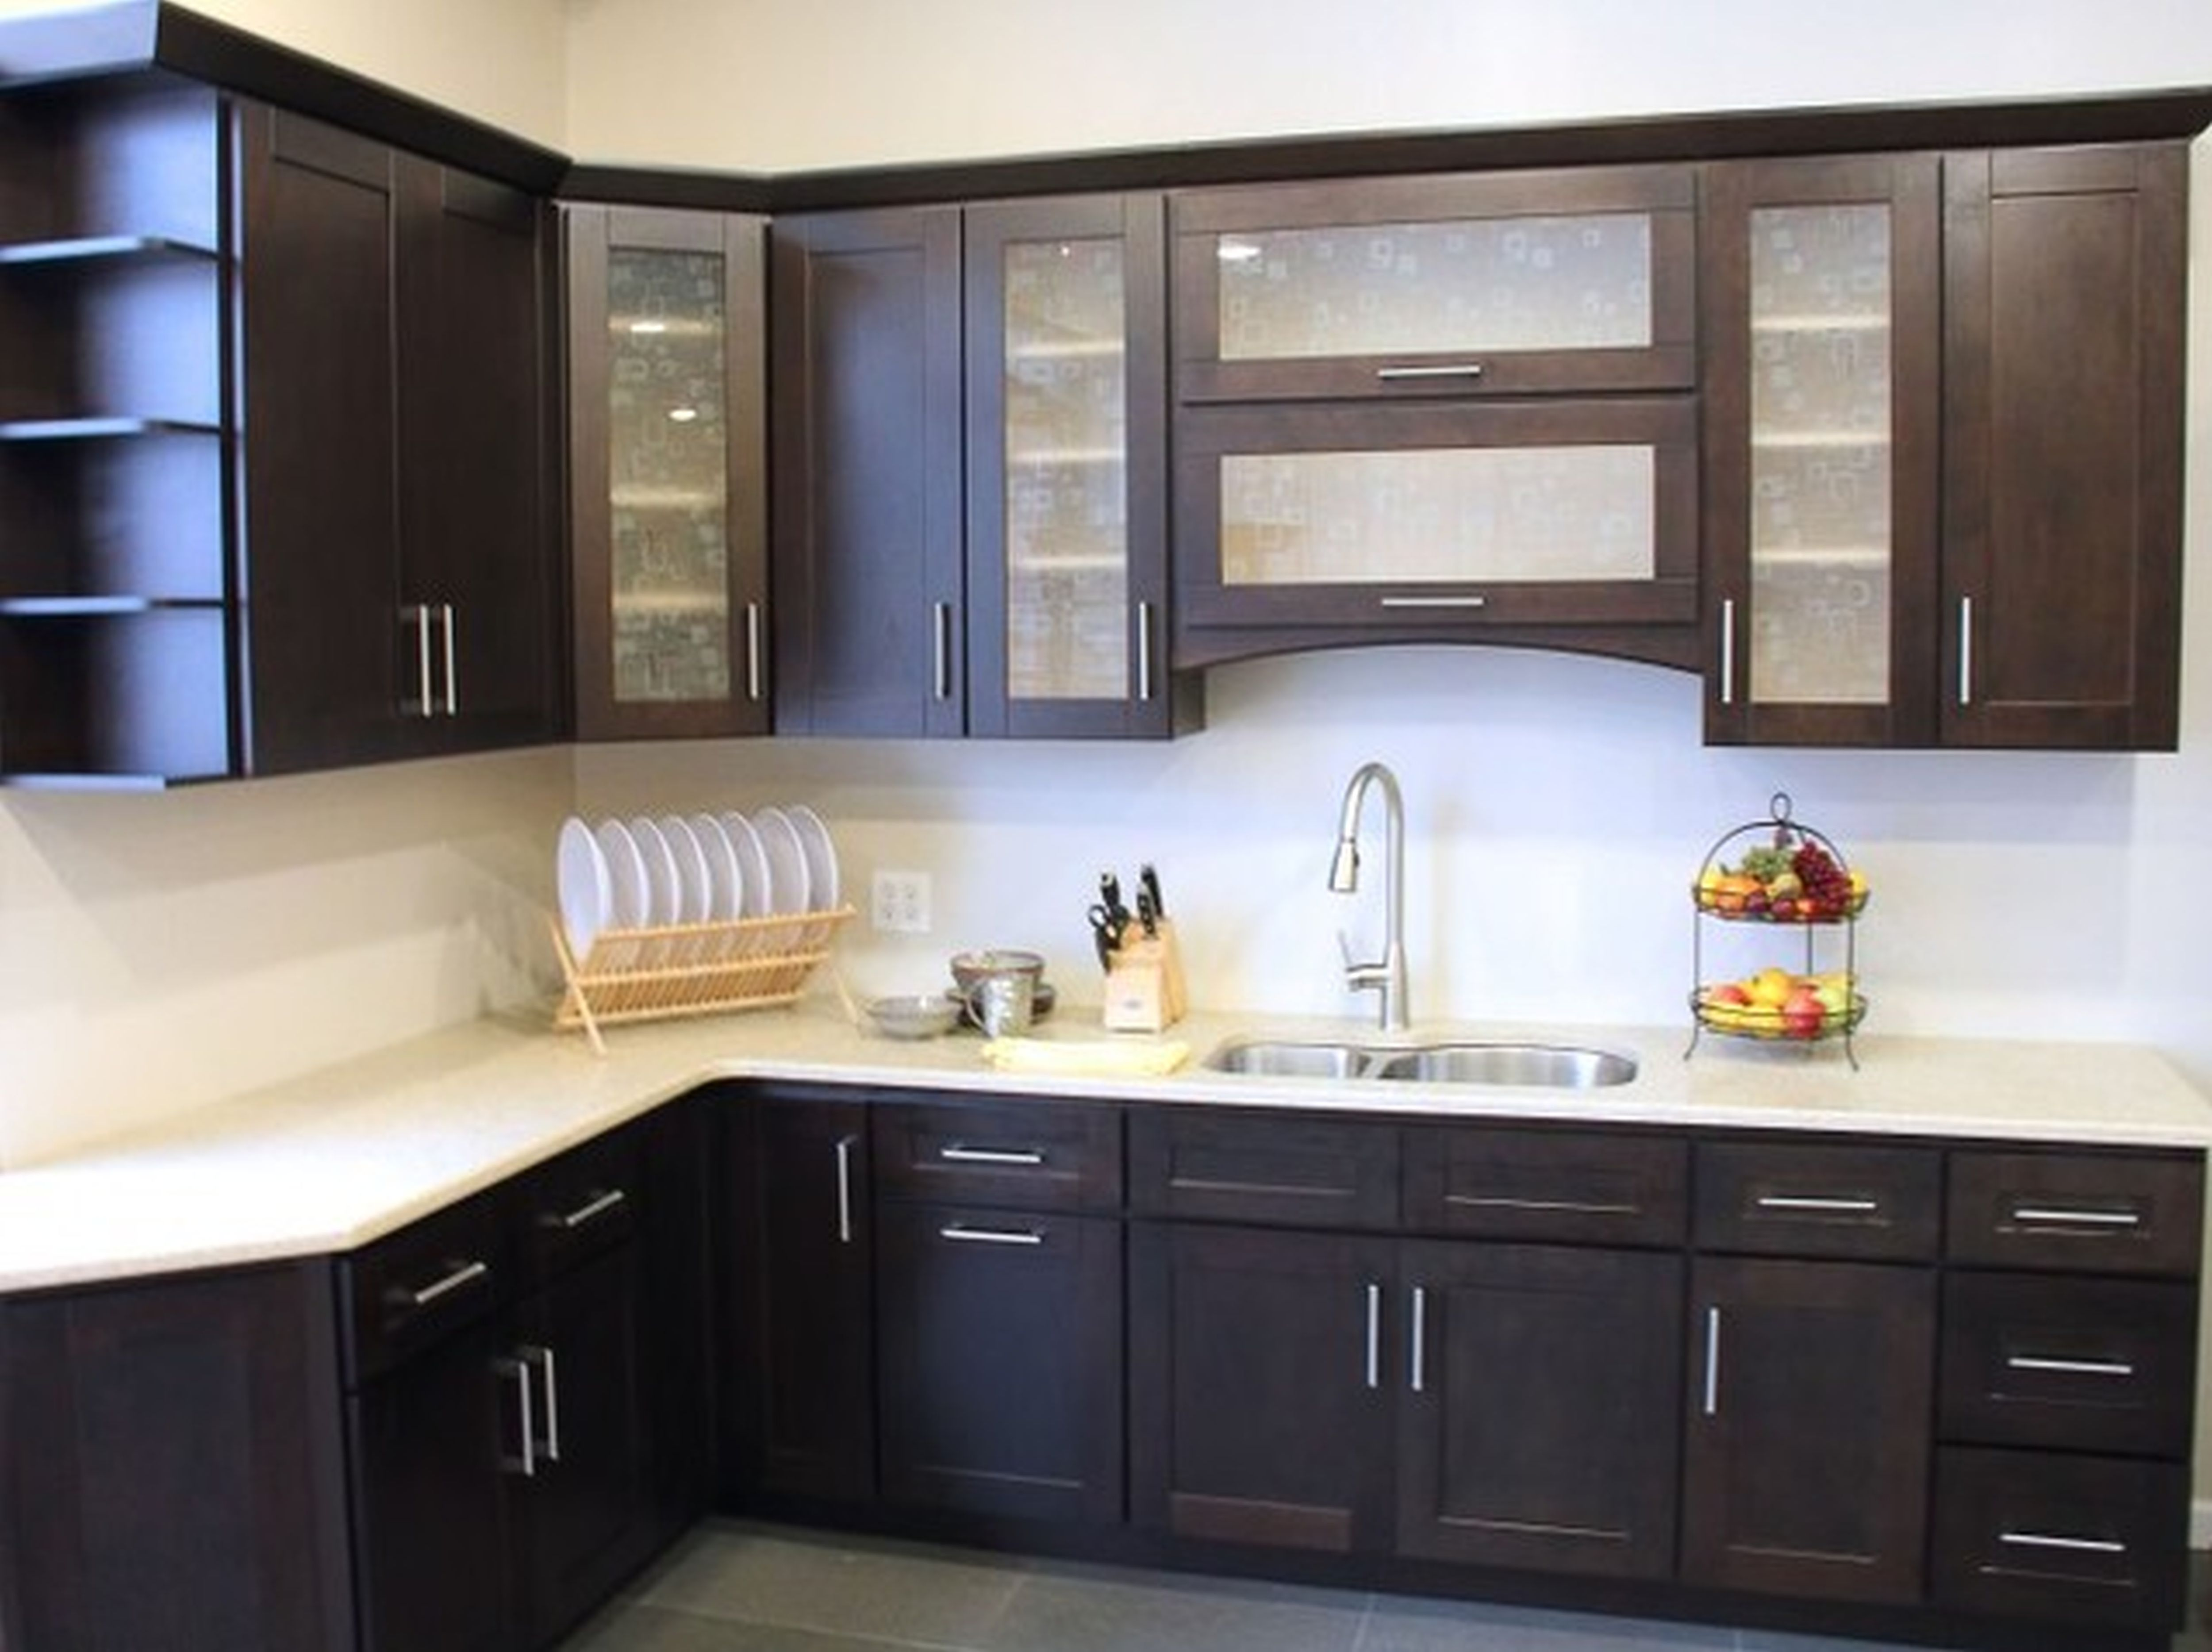 Custom Kitchen Cabinets Designs For Your Lovely Kitchen Artmakehome